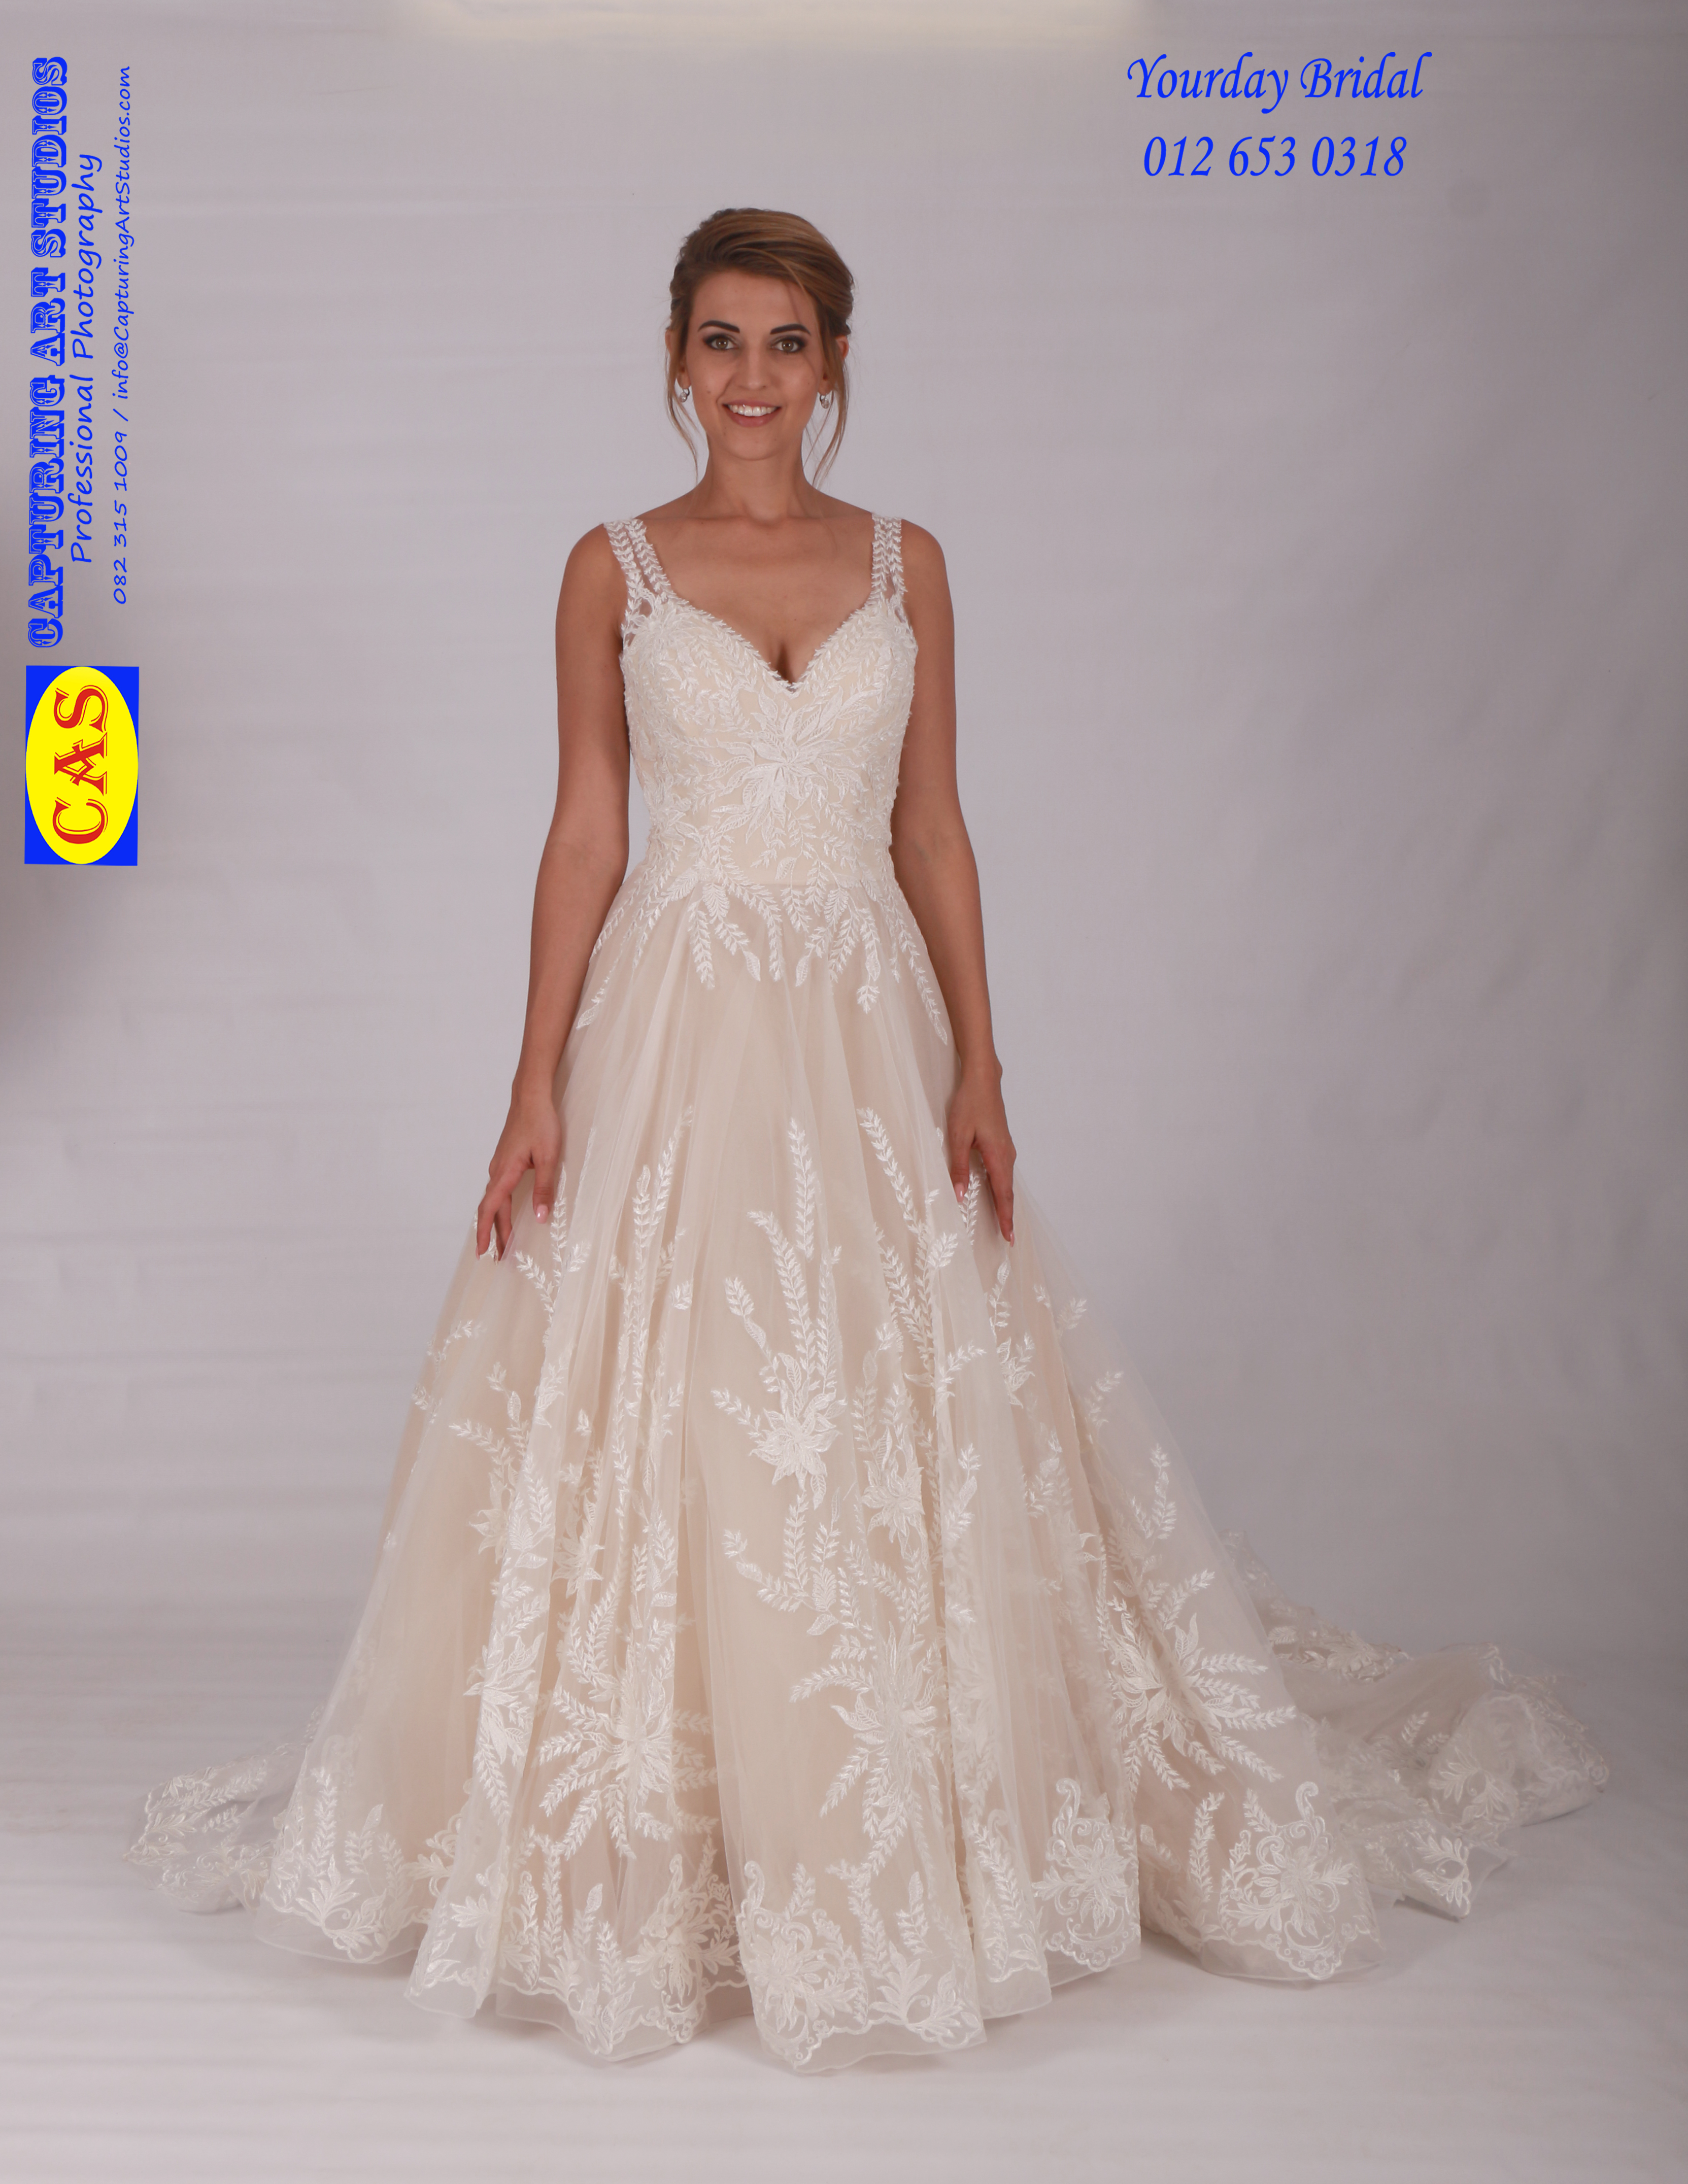 exclusive-wedding-collection-1-f